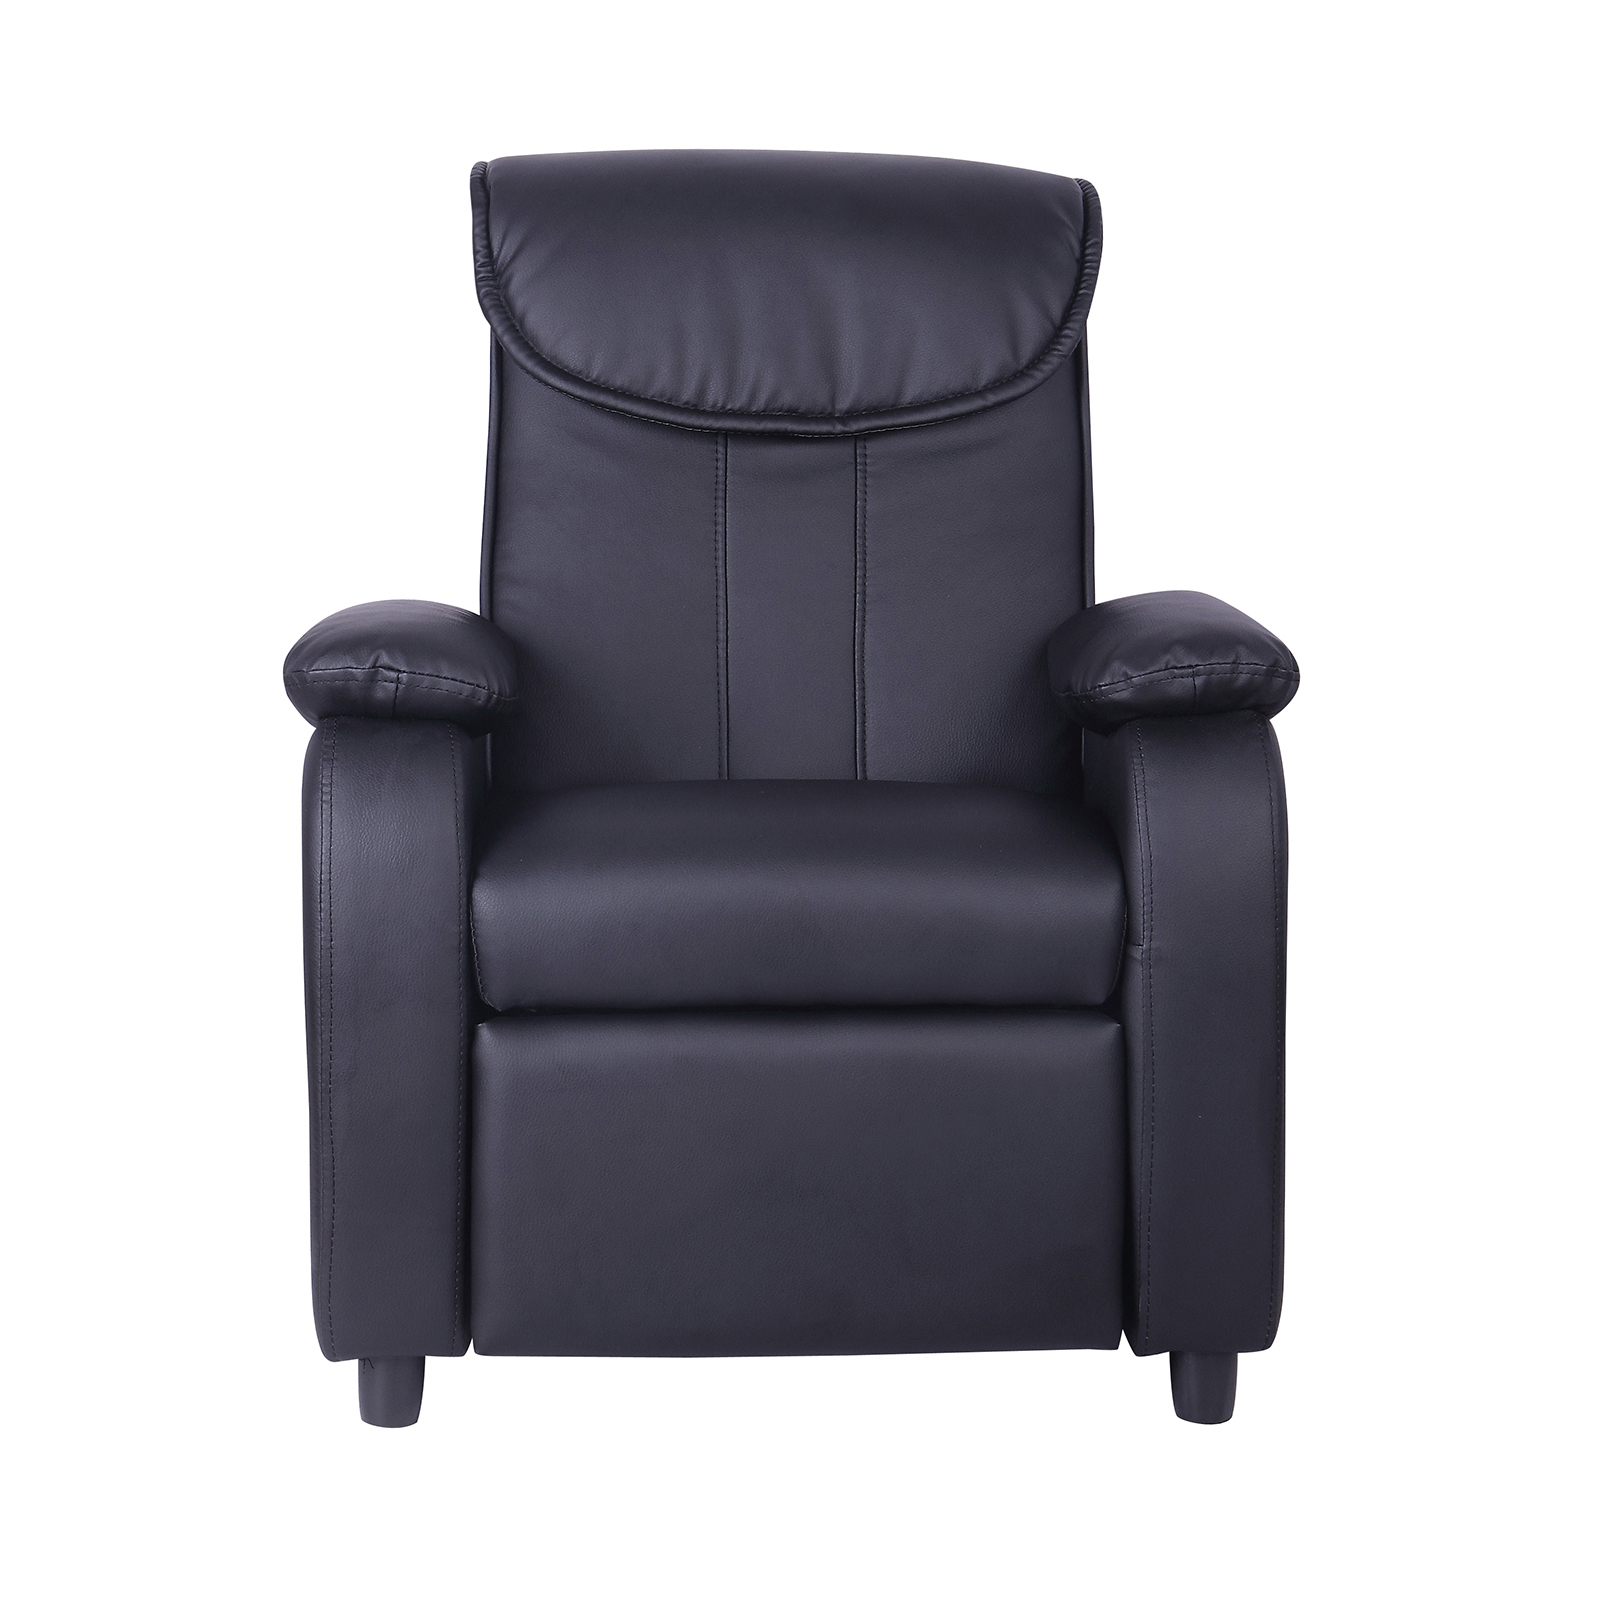 Kids Reclining Chair Kids Childrens Faux Leather Padded Reclining Recliner